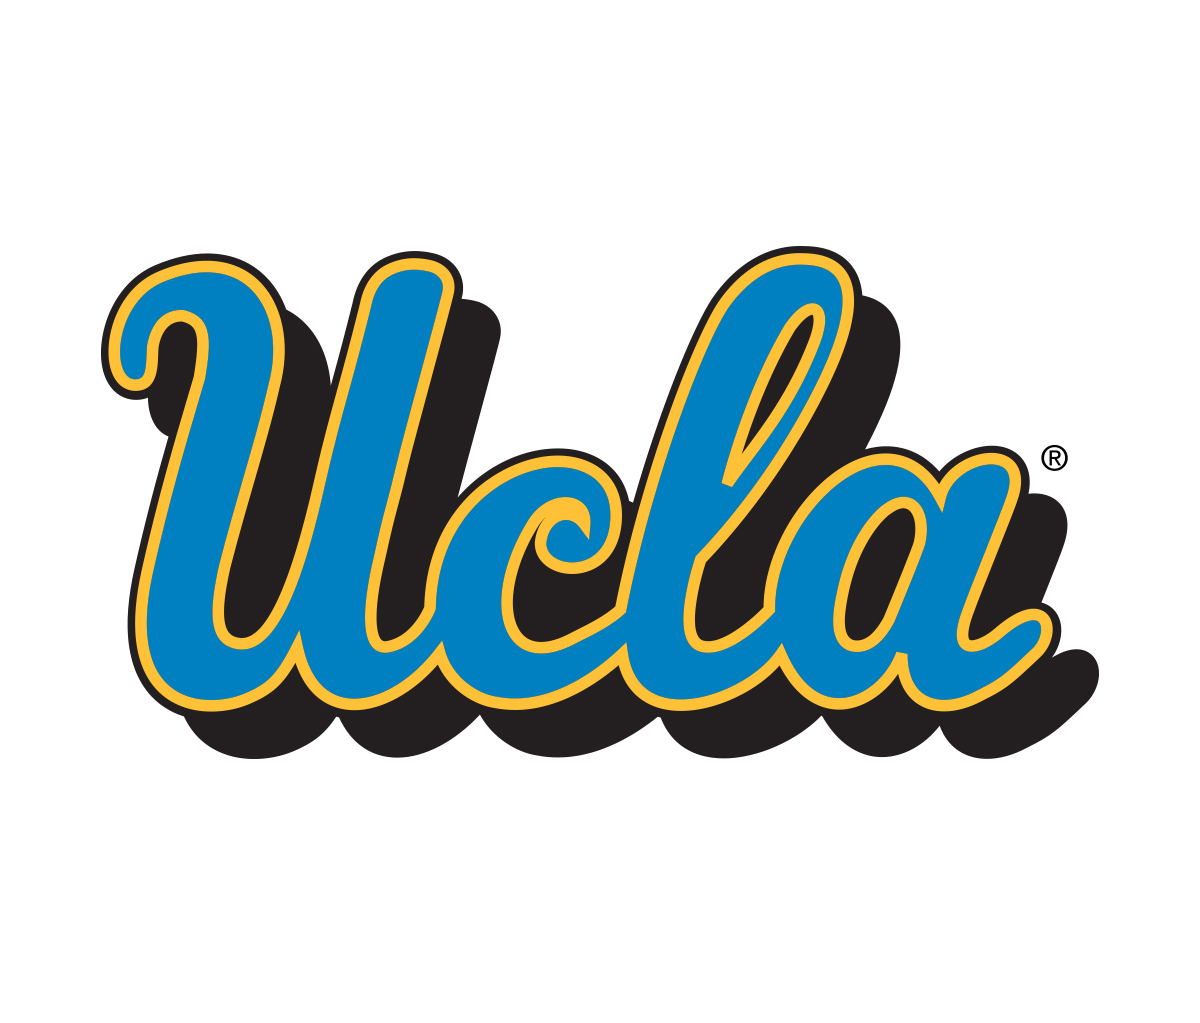 Free download BROWSE ucla logo HD Photo Wallpaper Collection.